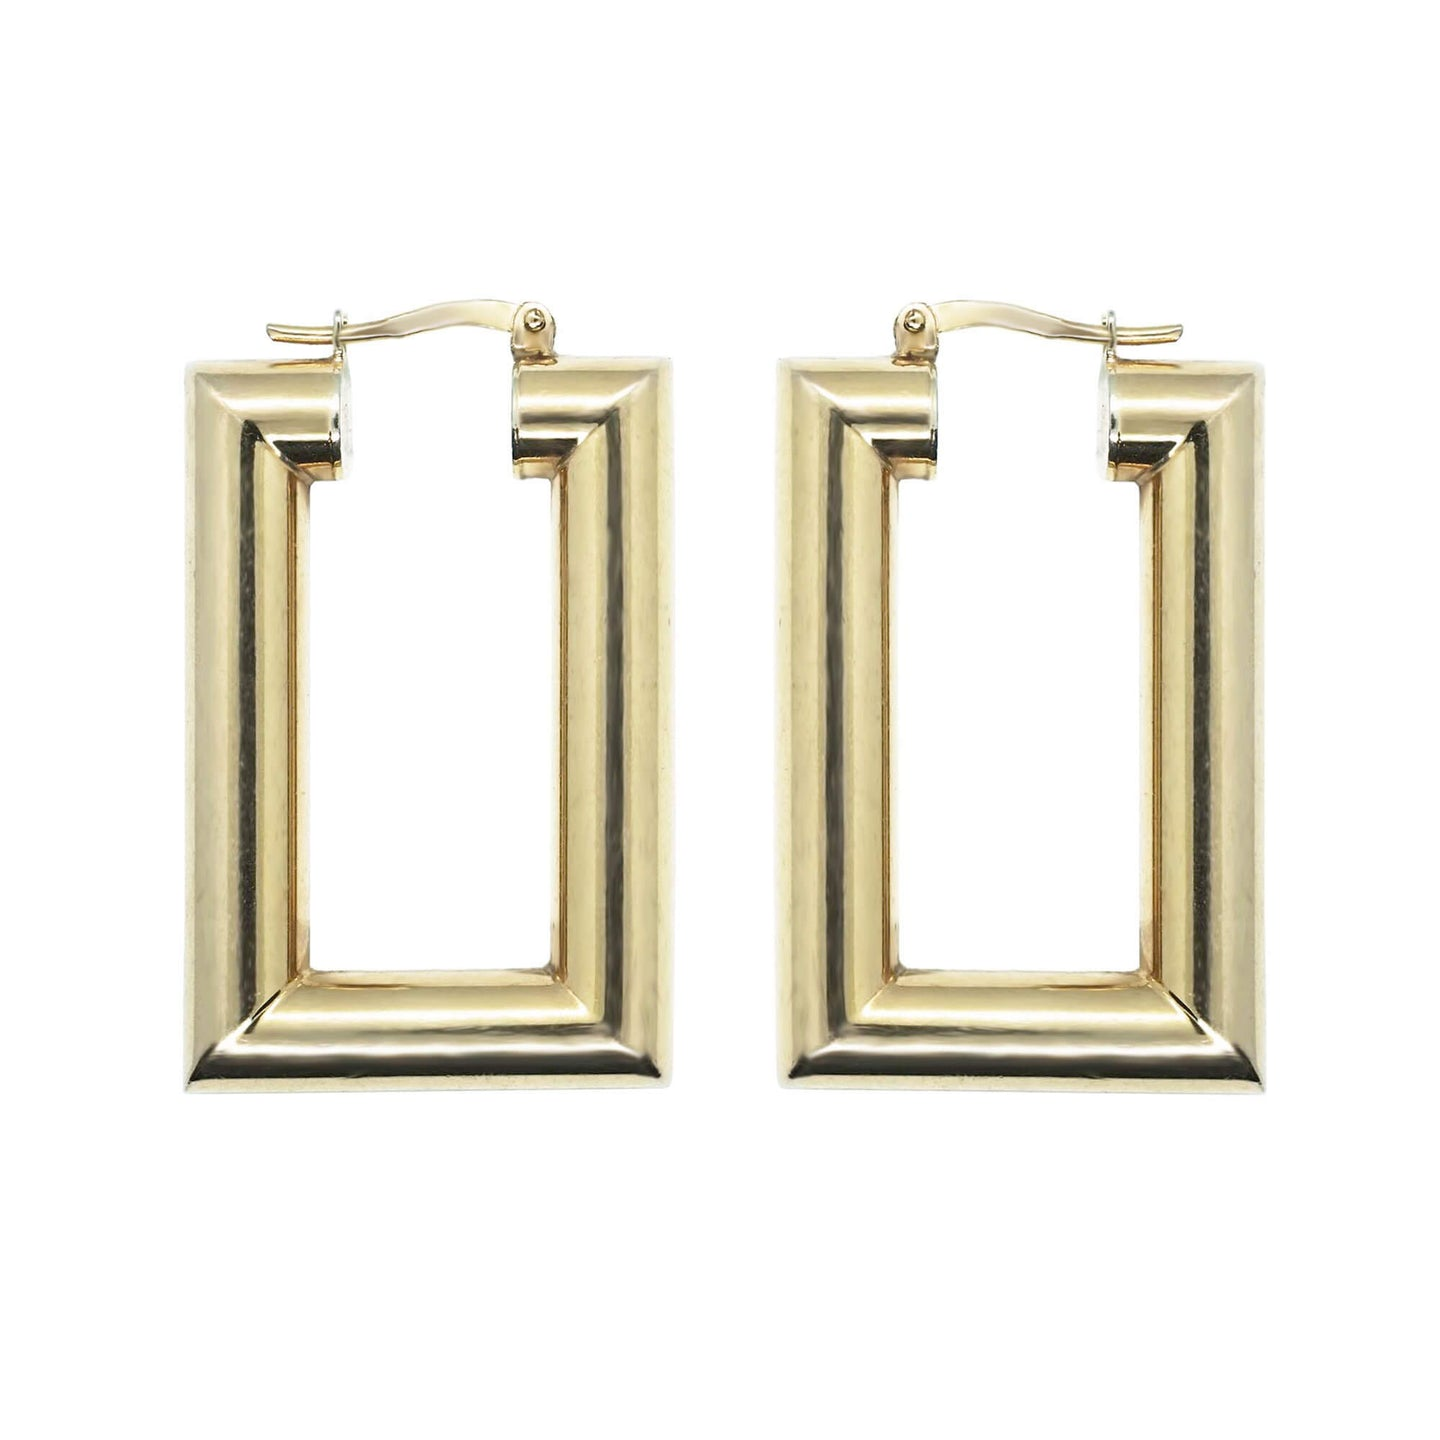 Close up pair Pawnshop Gold Plated Sterling Silver Large Rectangle Hoop Earrings, hinge closure. White background.